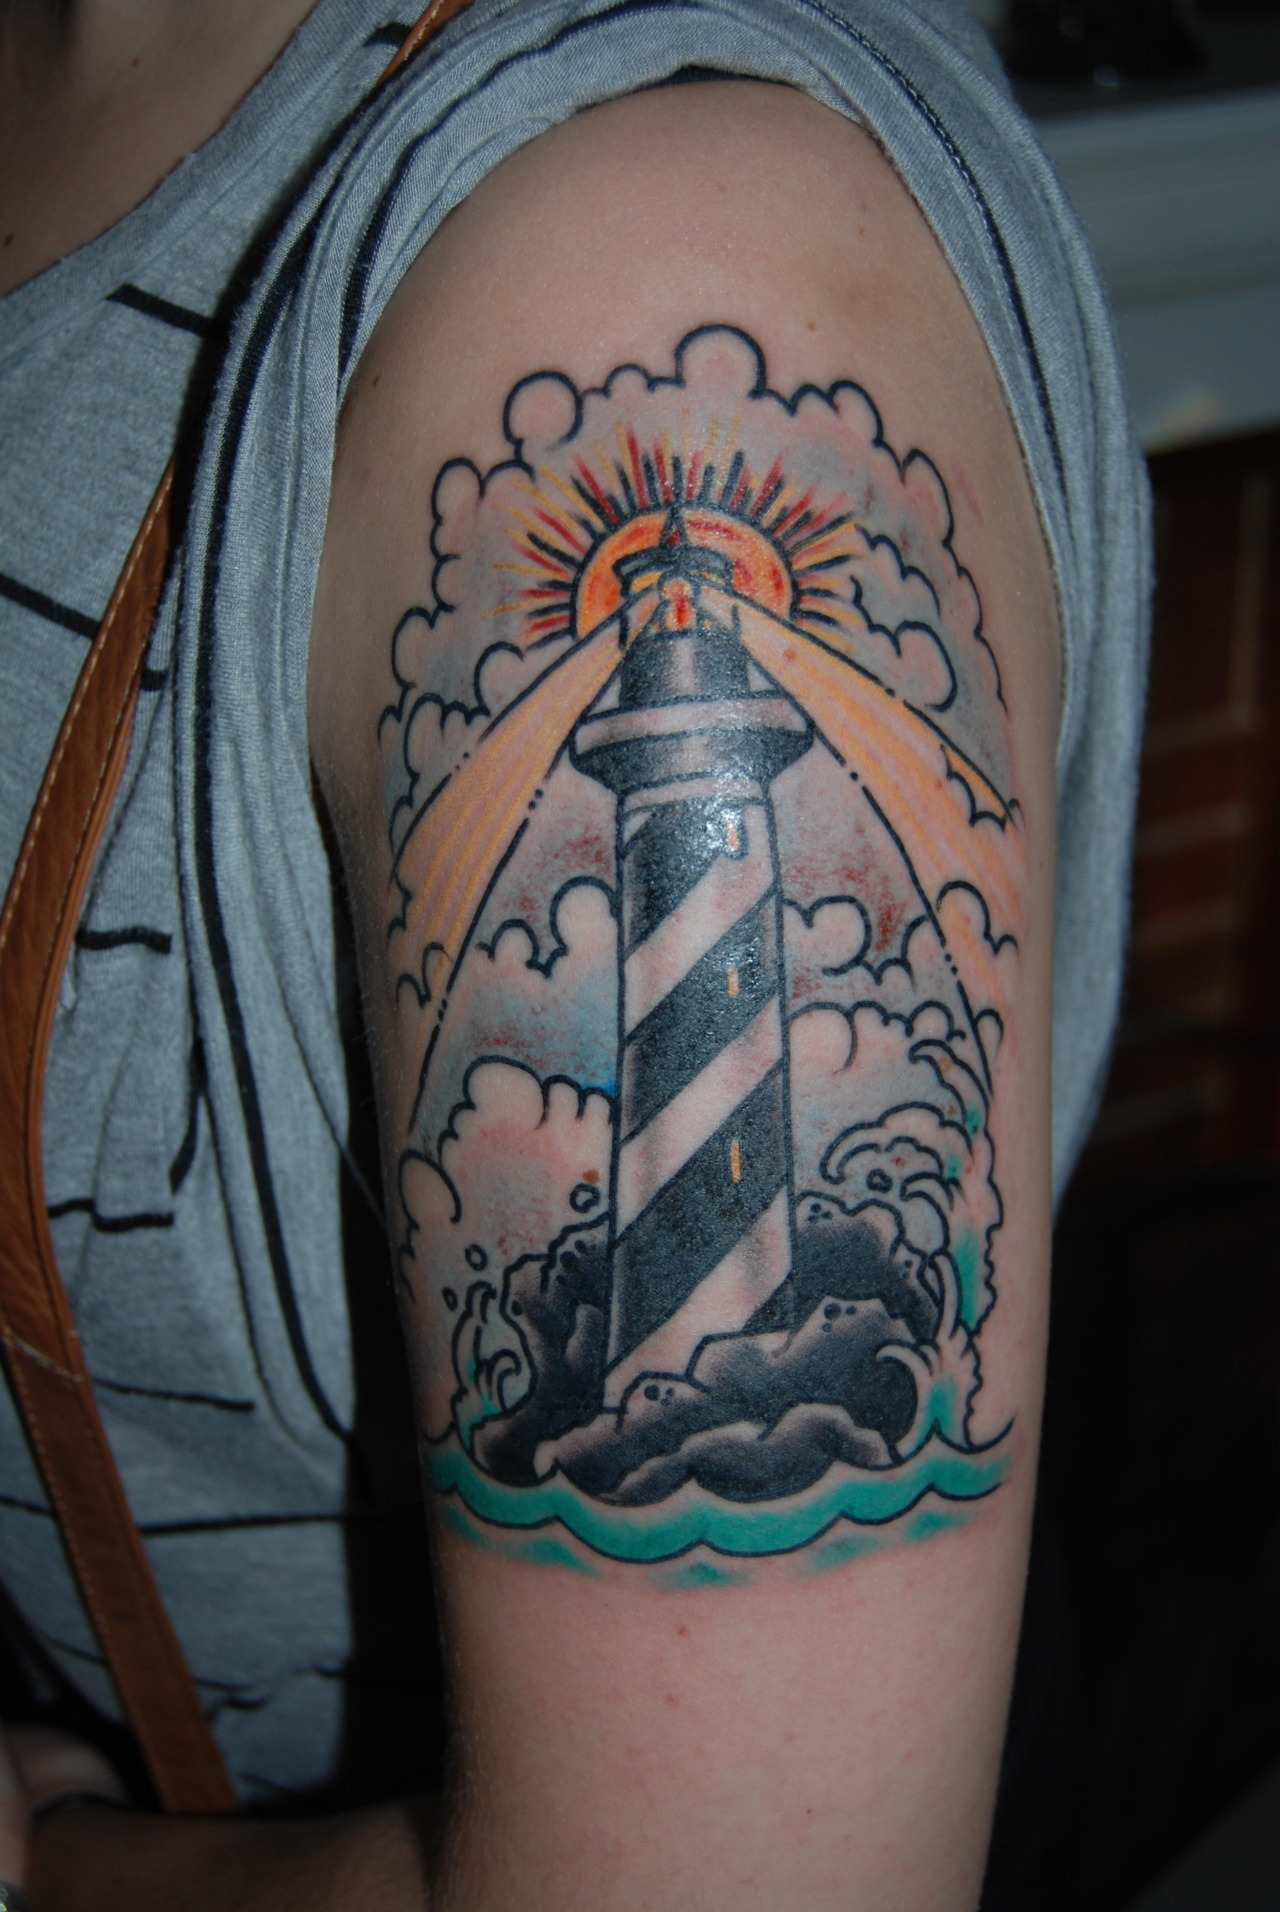 fuckyeahtattoos:  This was my girlfriend's first traditional tattoo. It was done by Jesse WIlson at Artistic Design in Indianapolis.  Jesse is an amazing tattooer, and I recommend stopping by if you're ever in Indy.